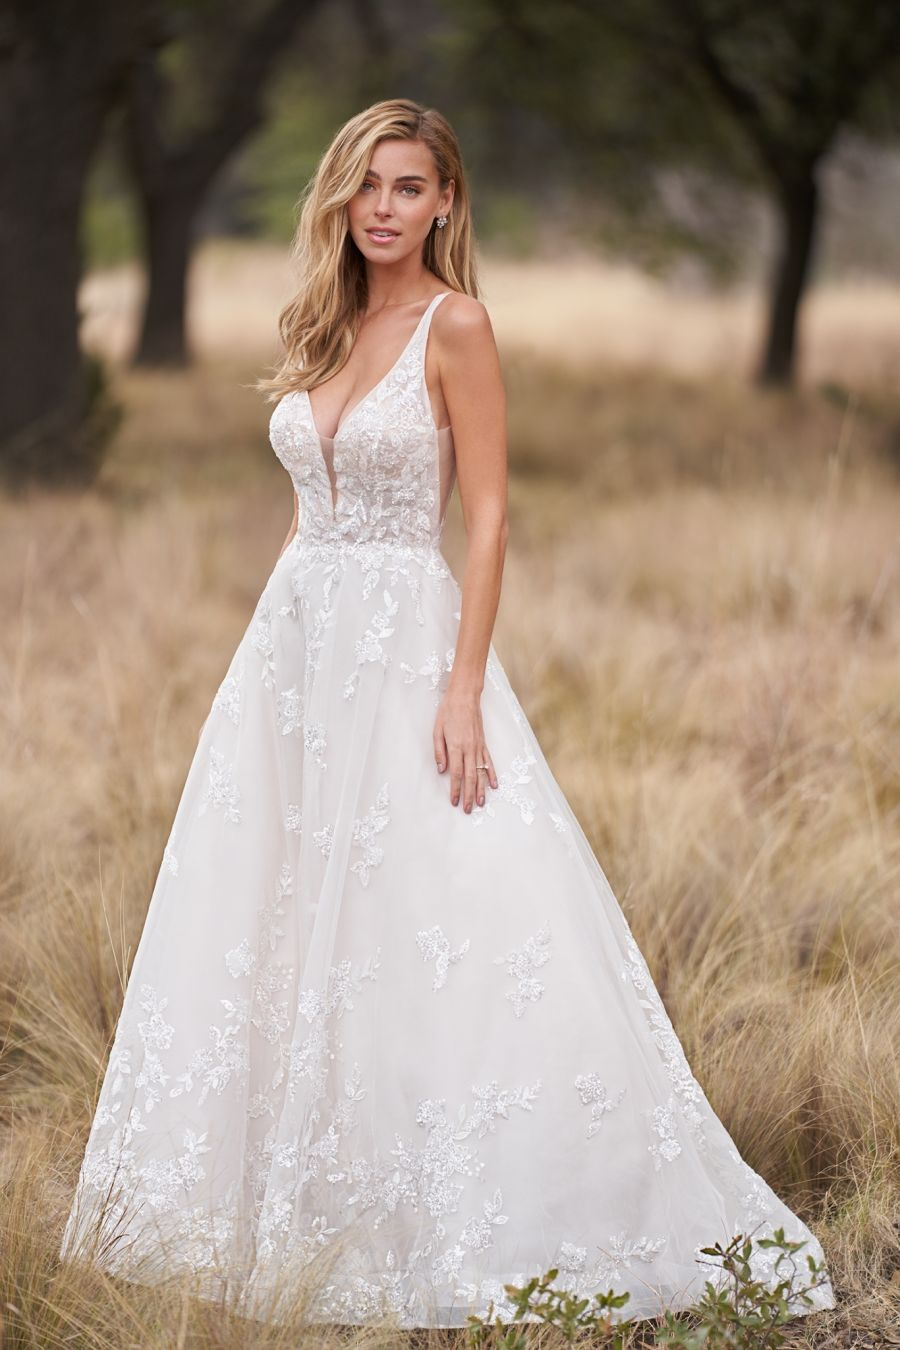 Allure Bridals 9758 Beadwork Adorns The Lace Appliques Along The Bodice And Hemline Of This Gown Allure Bridal Gowns Allure Bridal Aline Wedding Dress [ 1350 x 900 Pixel ]